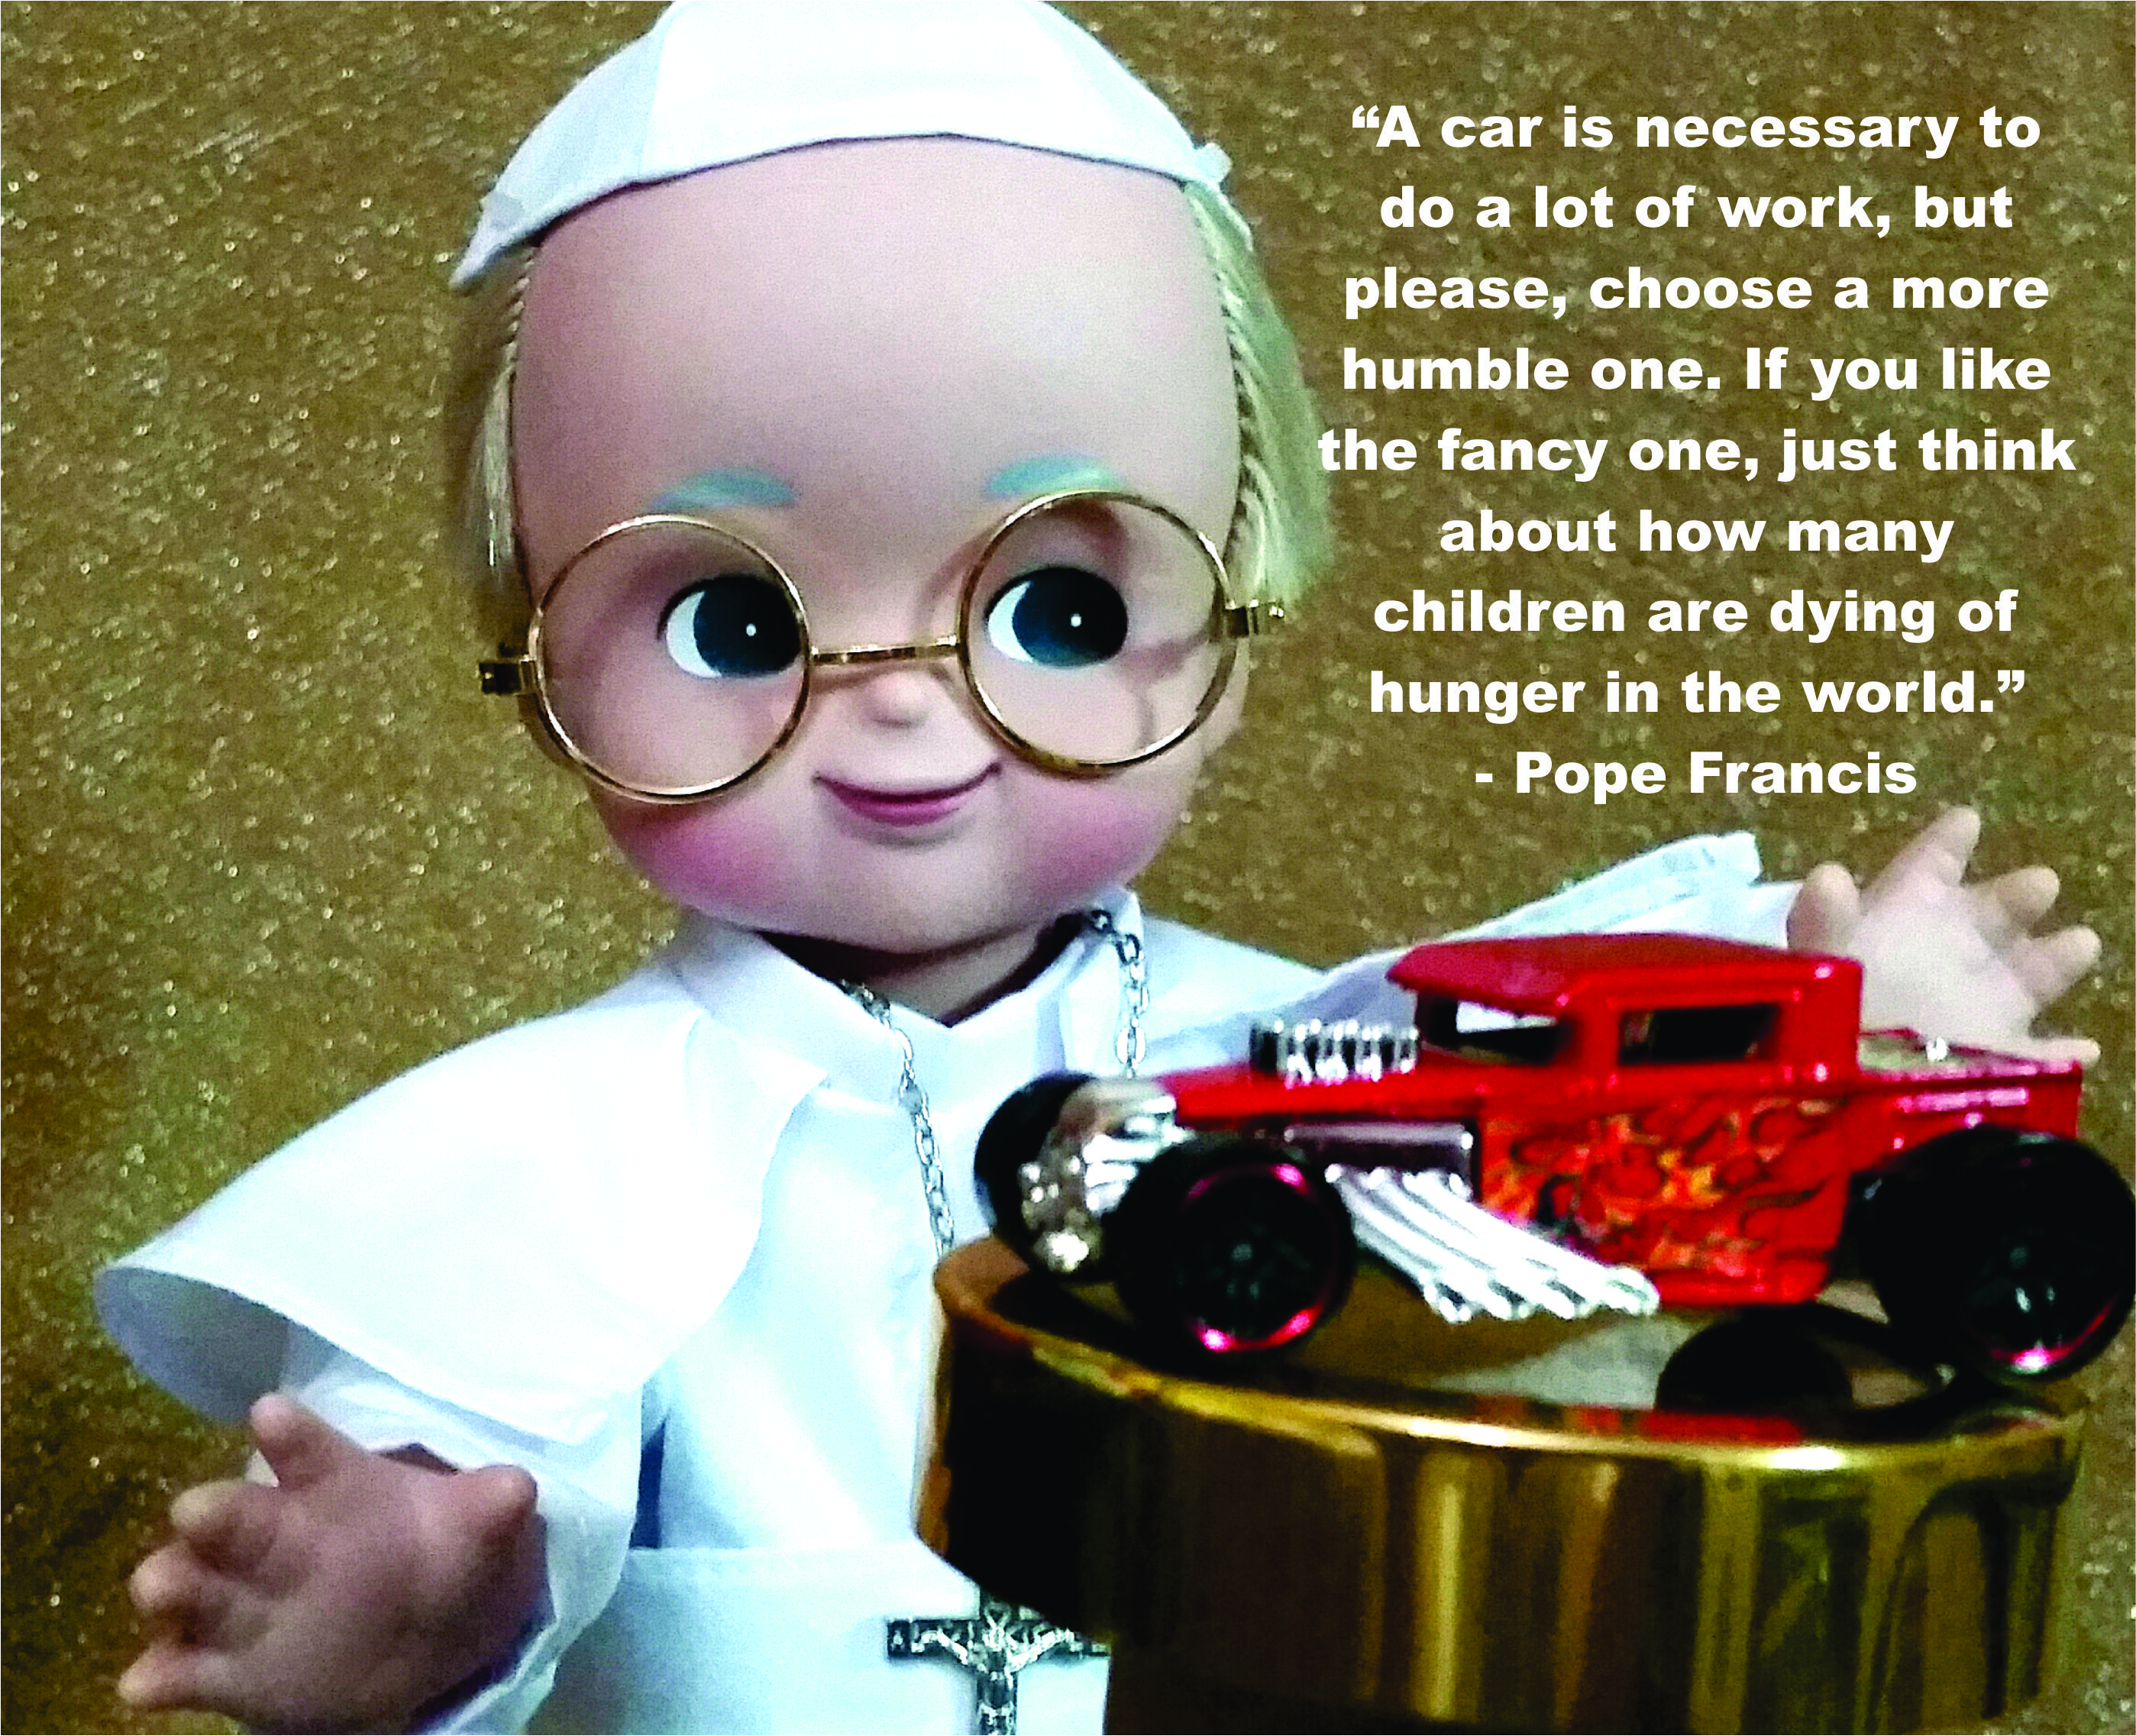 Pope Francis' religious  quote on choosing humble cars and hungry children. Photo by Romana K. Go